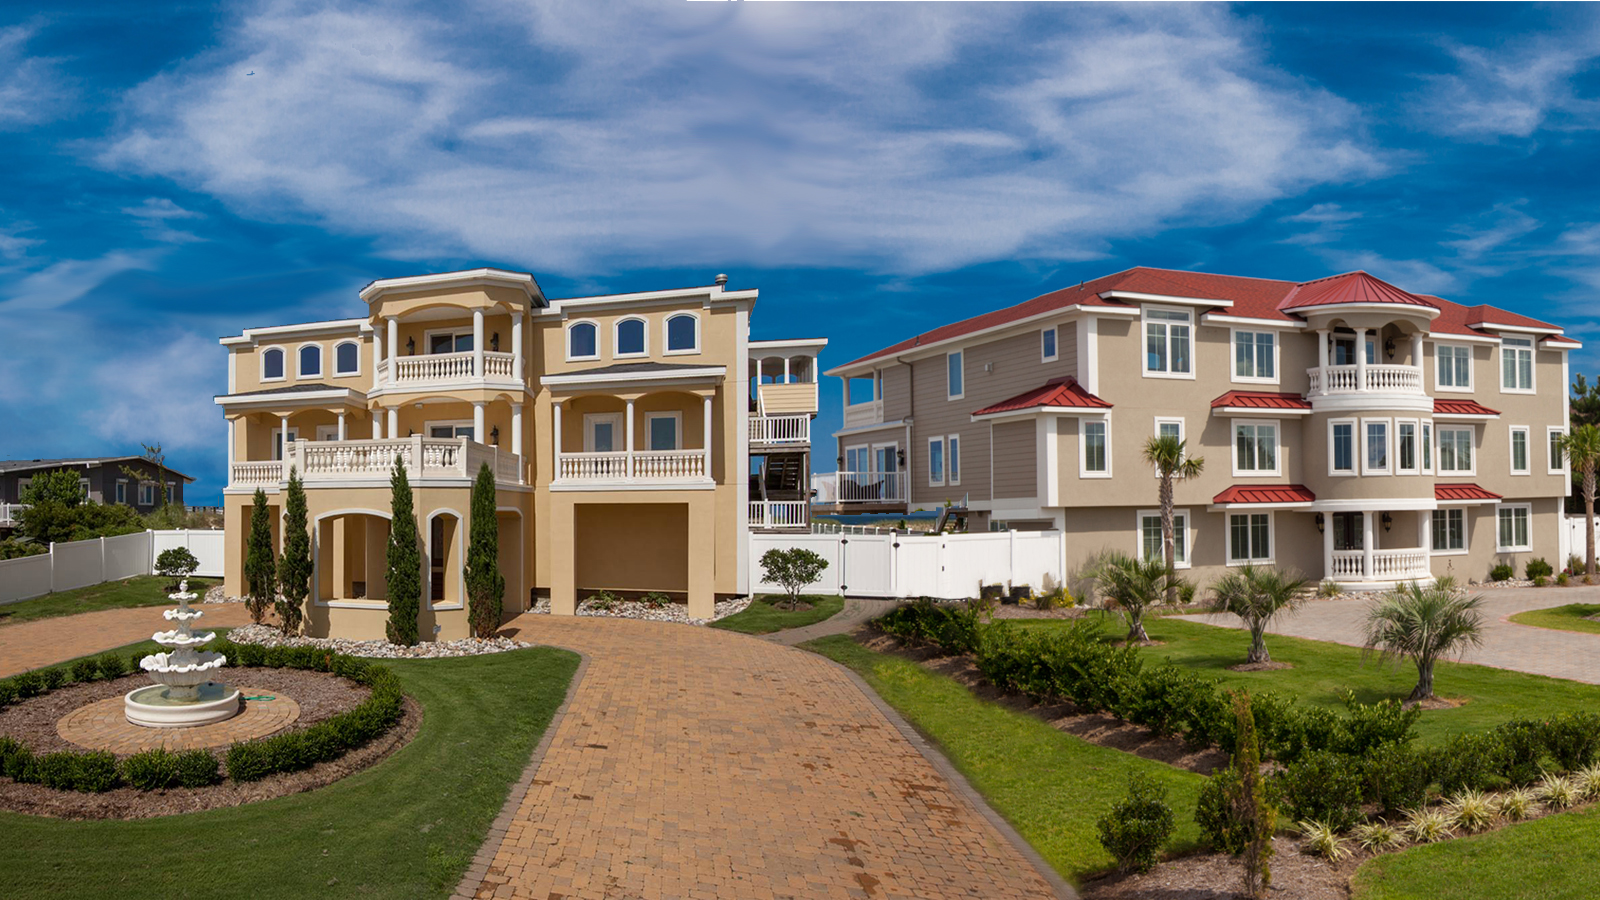 Other Residential for Sale at Bella Vita / Palazzo 2304 Sandfiddler Road Virginia Beach, Virginia 23456 United States